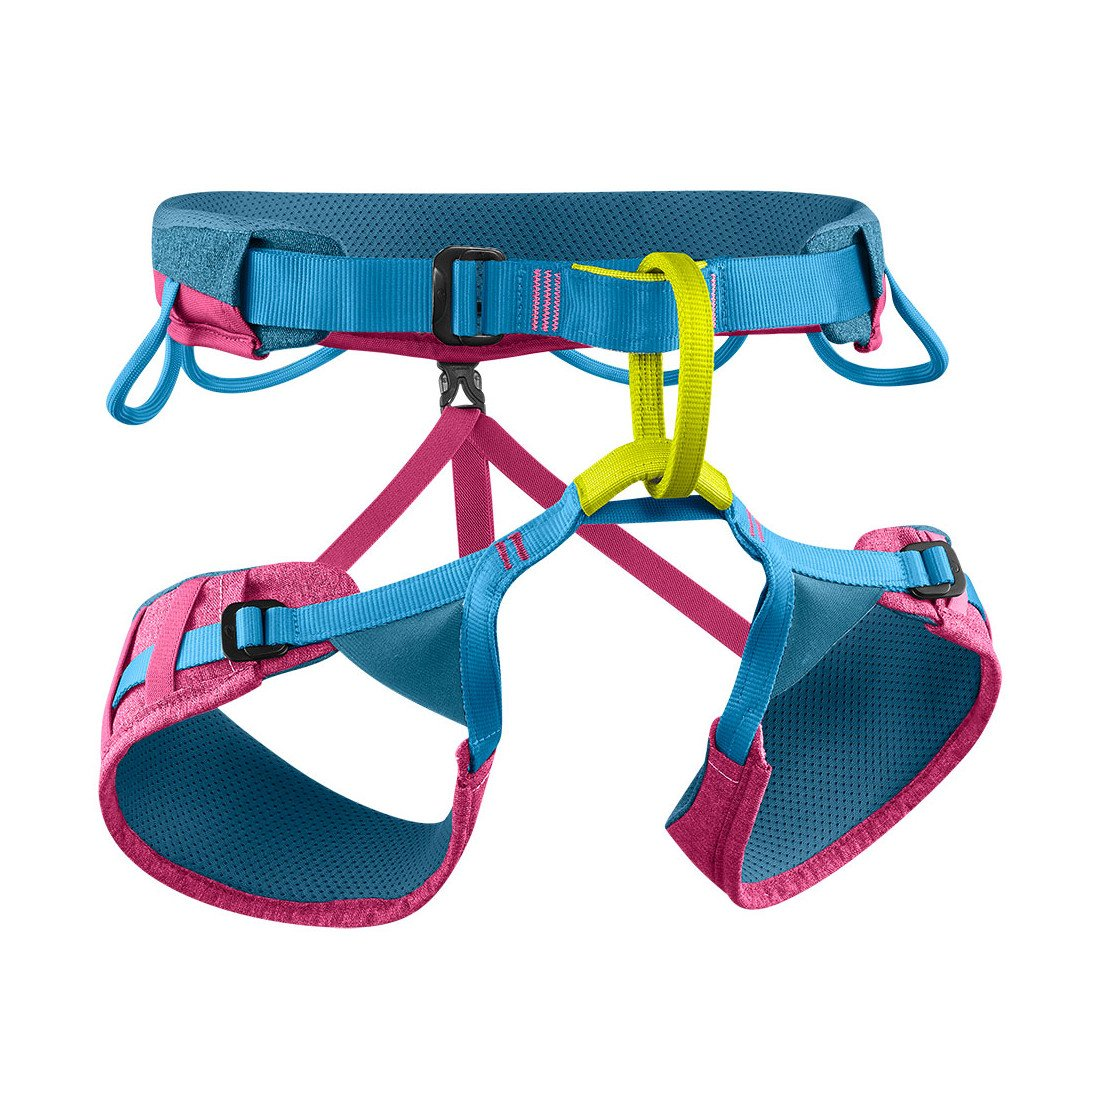 Edelrid Jayne III climbing Harness, front/side view in blue, pink and yellow colours